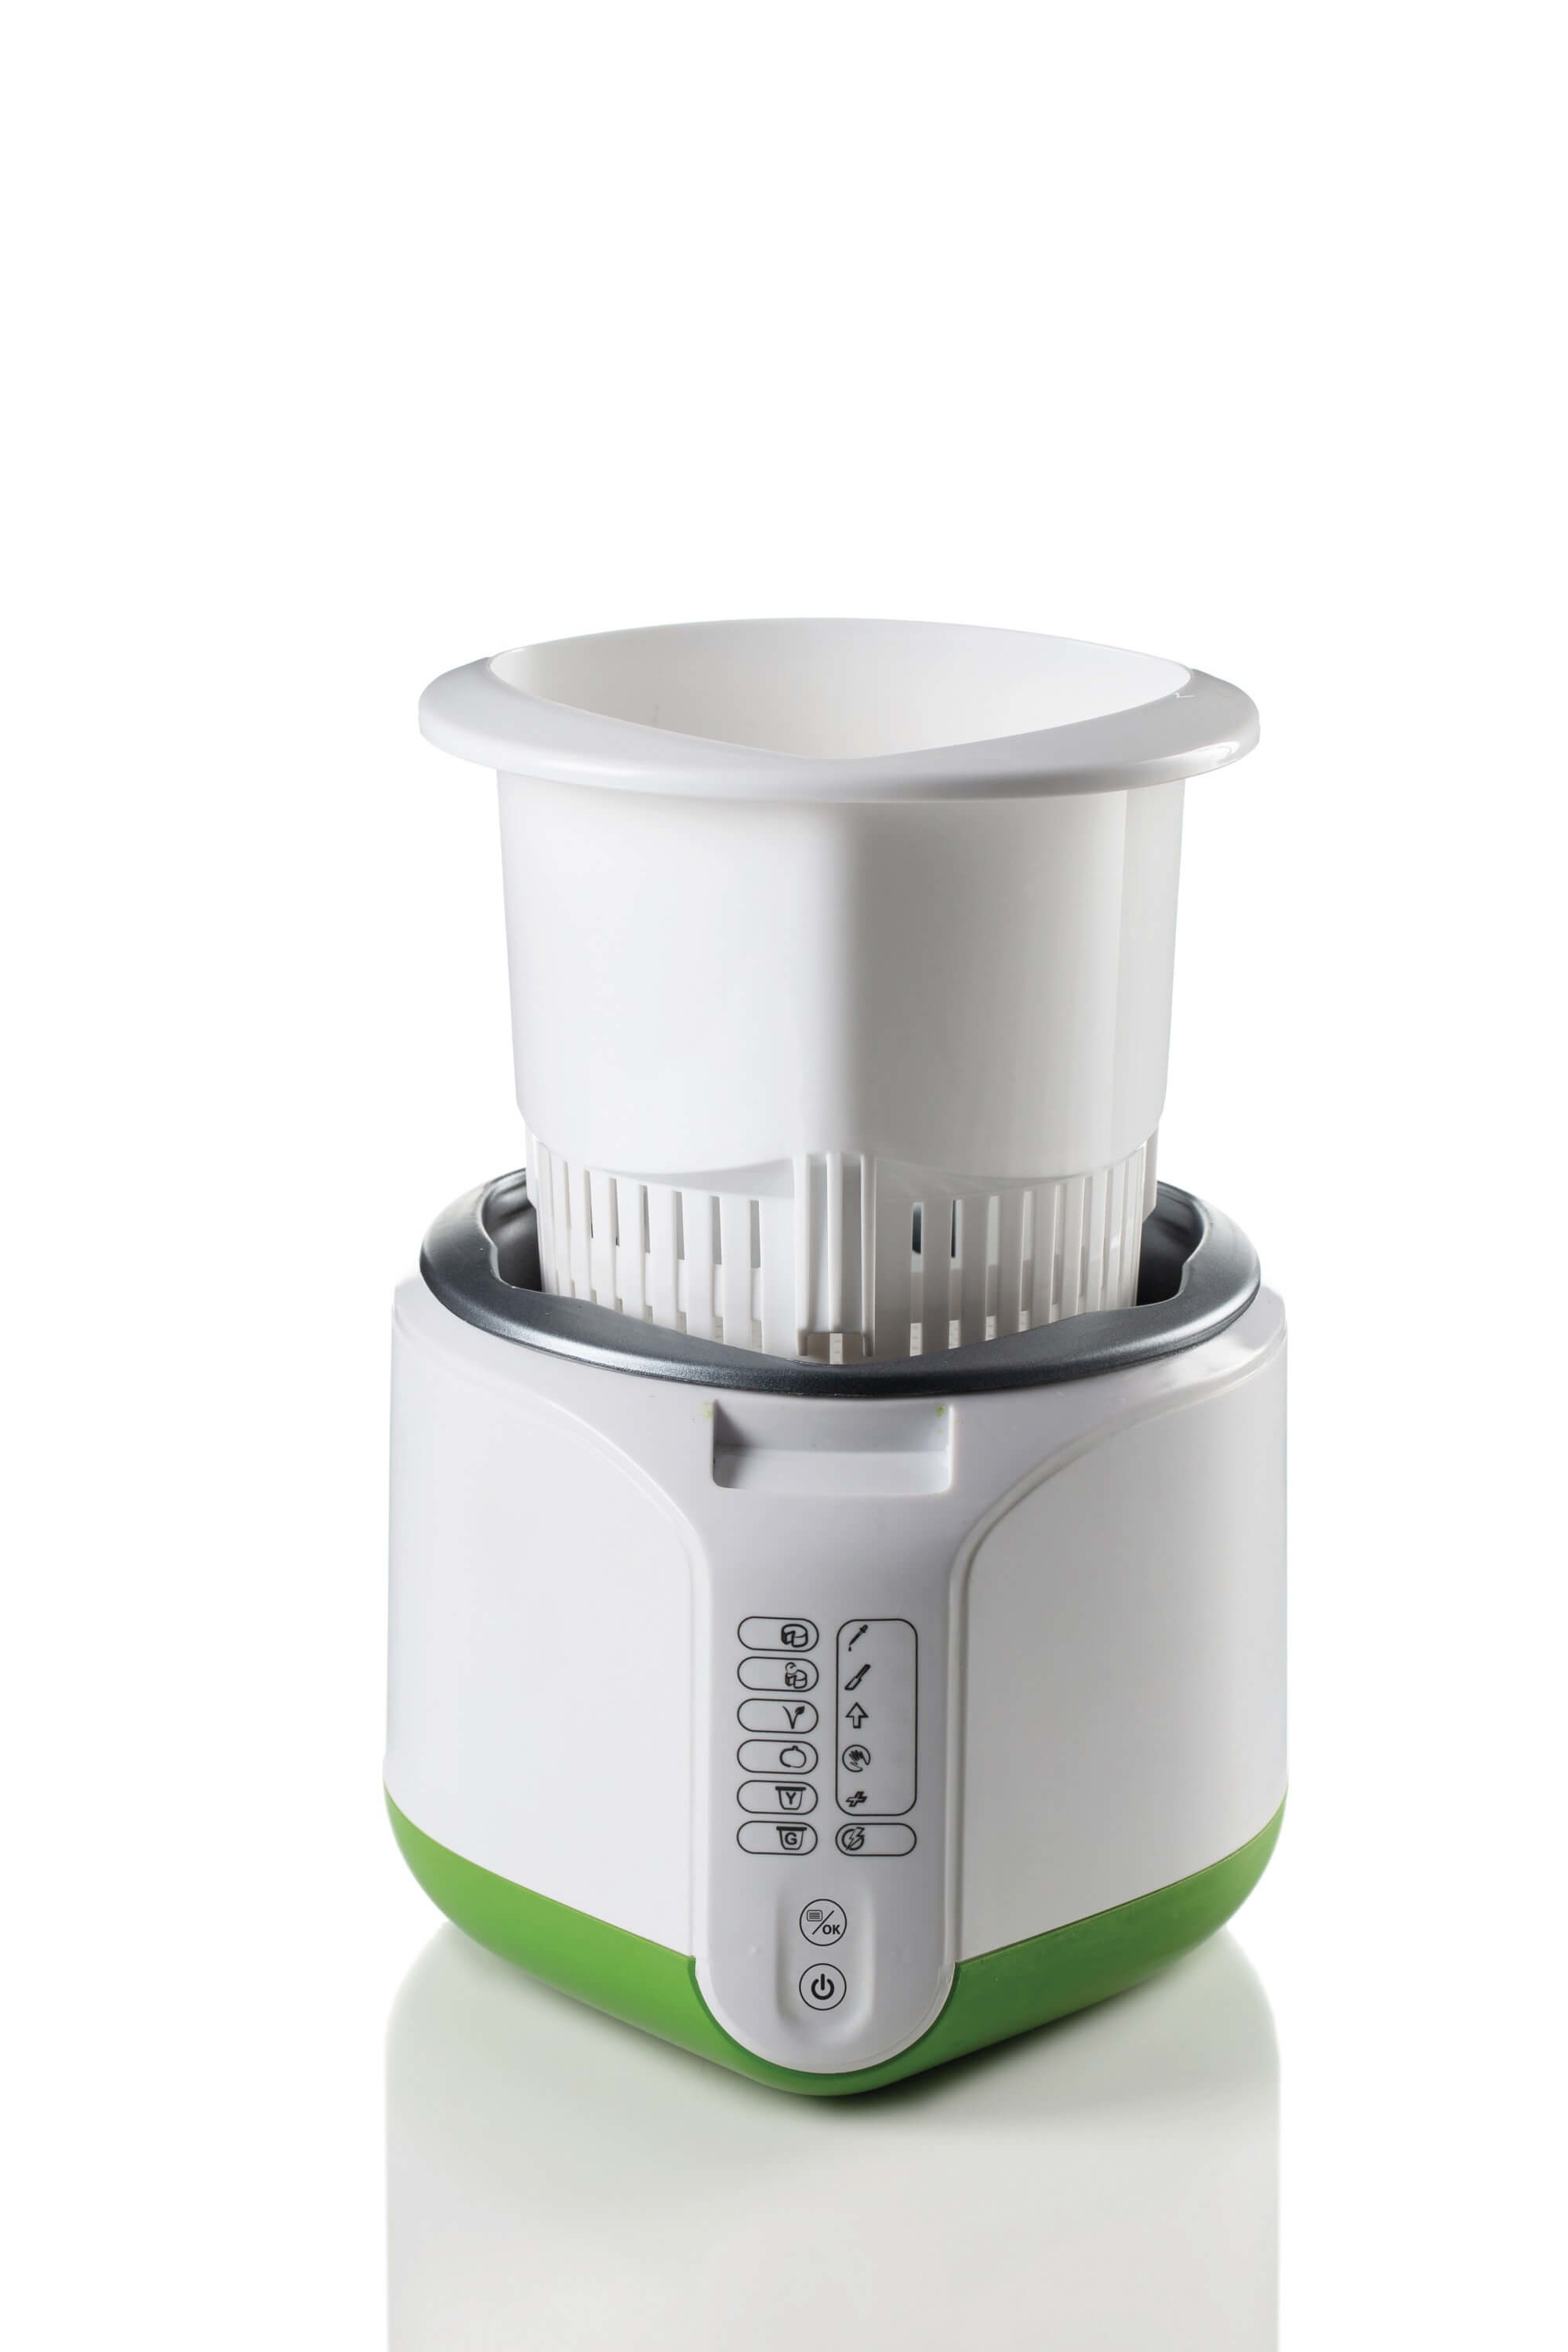 Ariete B-Cheese 0615 Formaggi, Yogurt 500 W 9